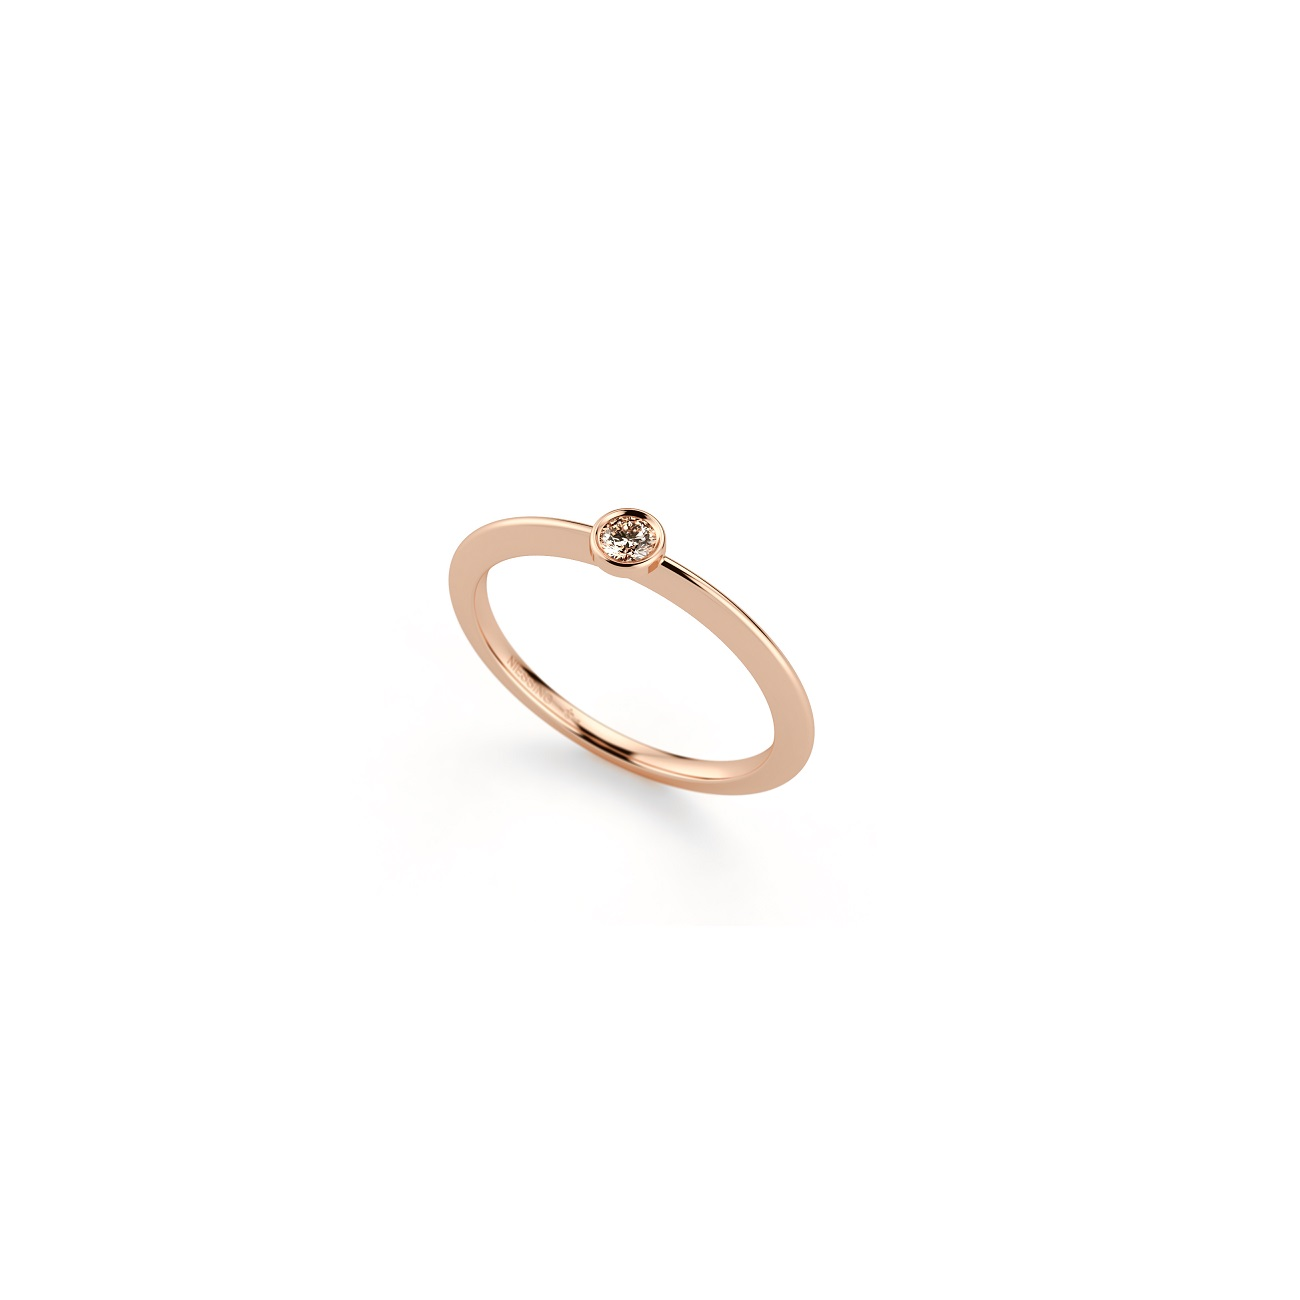 Niessing Ring Stella aus Rosewood Gold mit Brillant